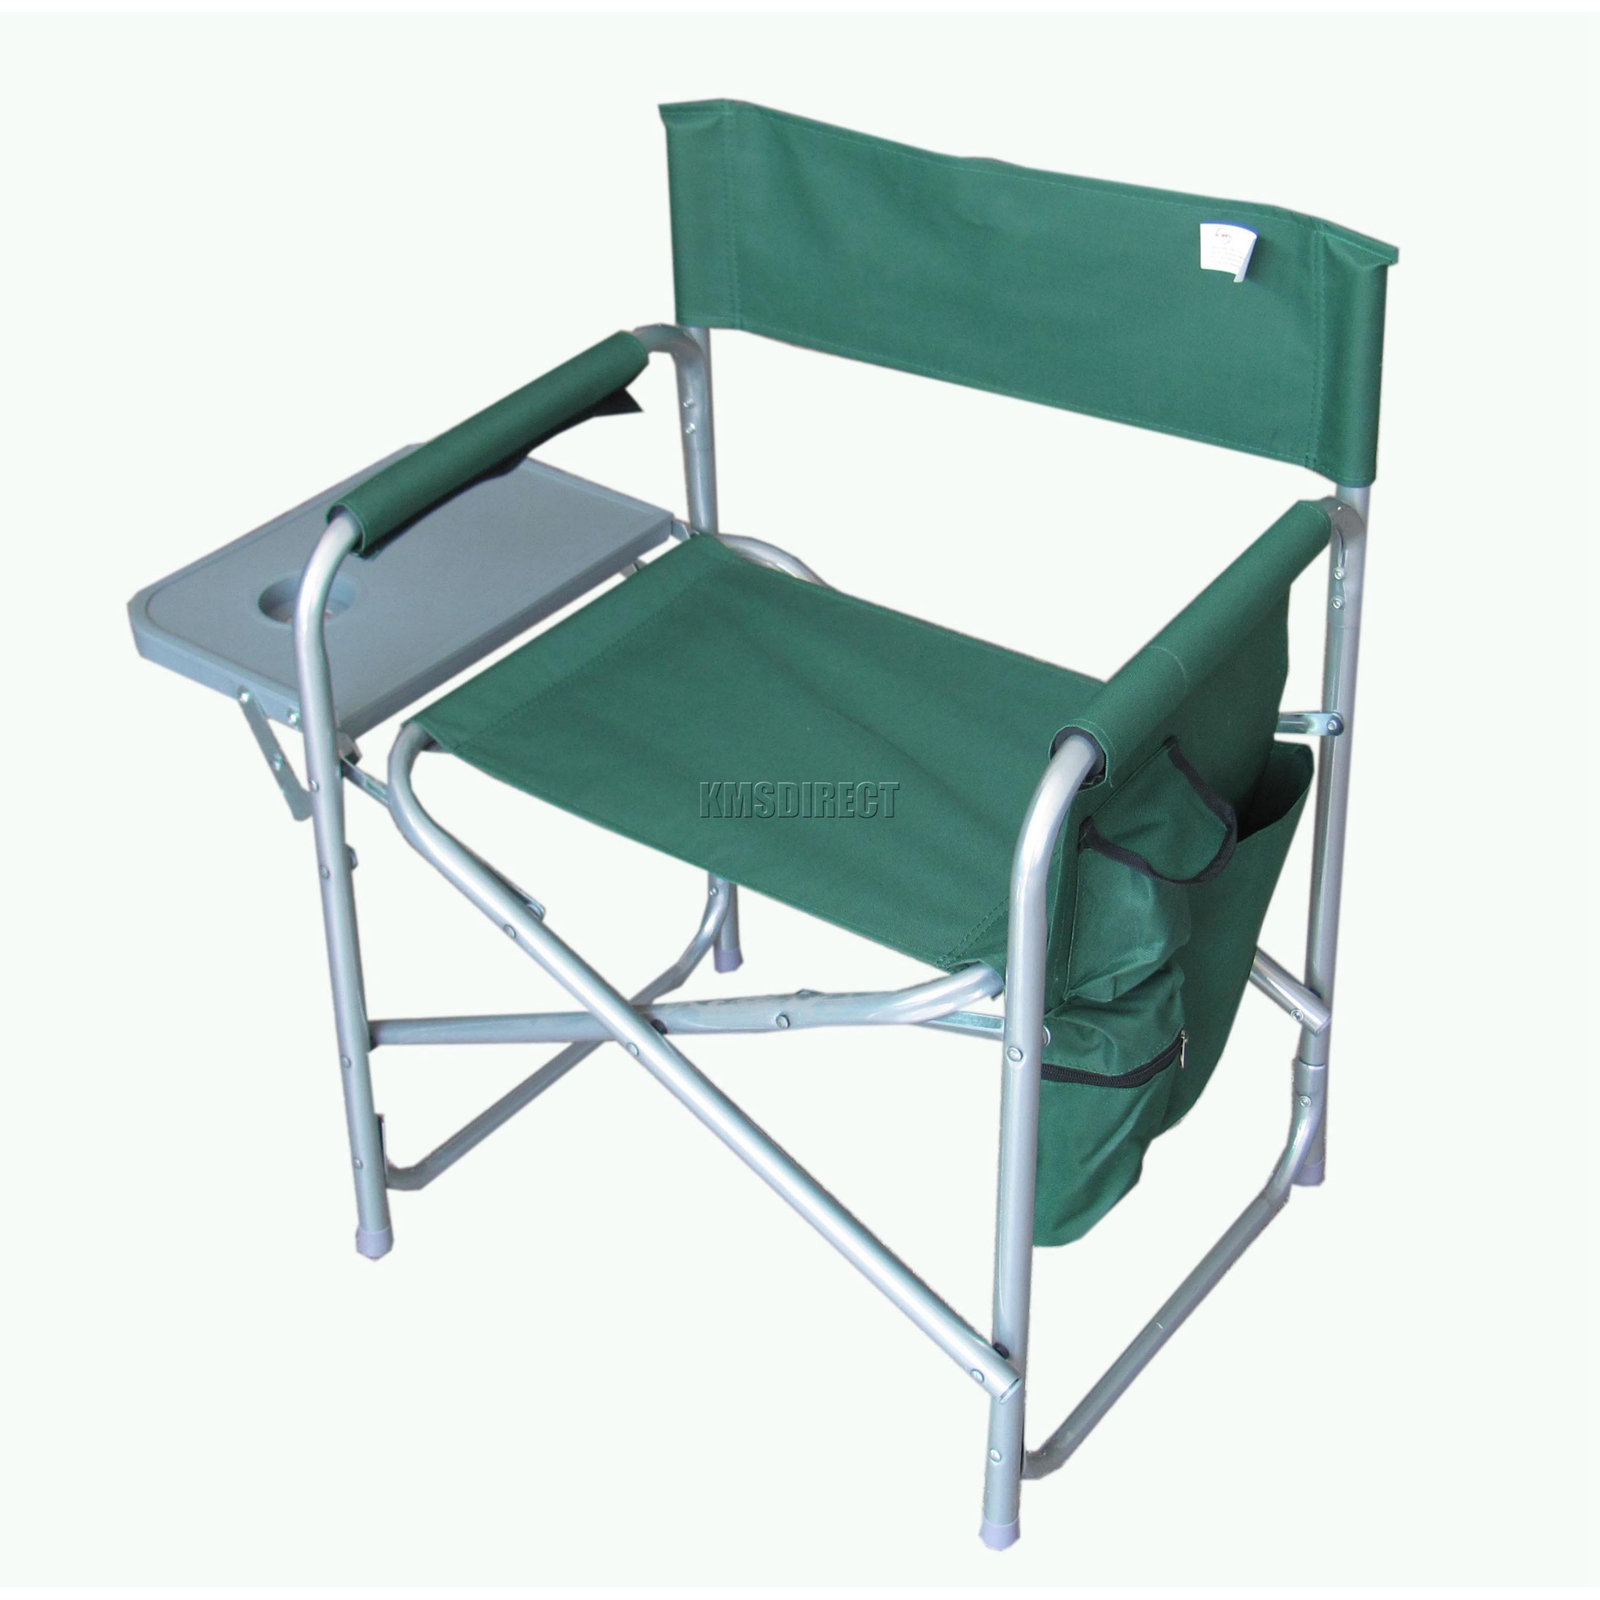 folding chair with side table wooden leather desk portable fishing camping outdoor garden seat